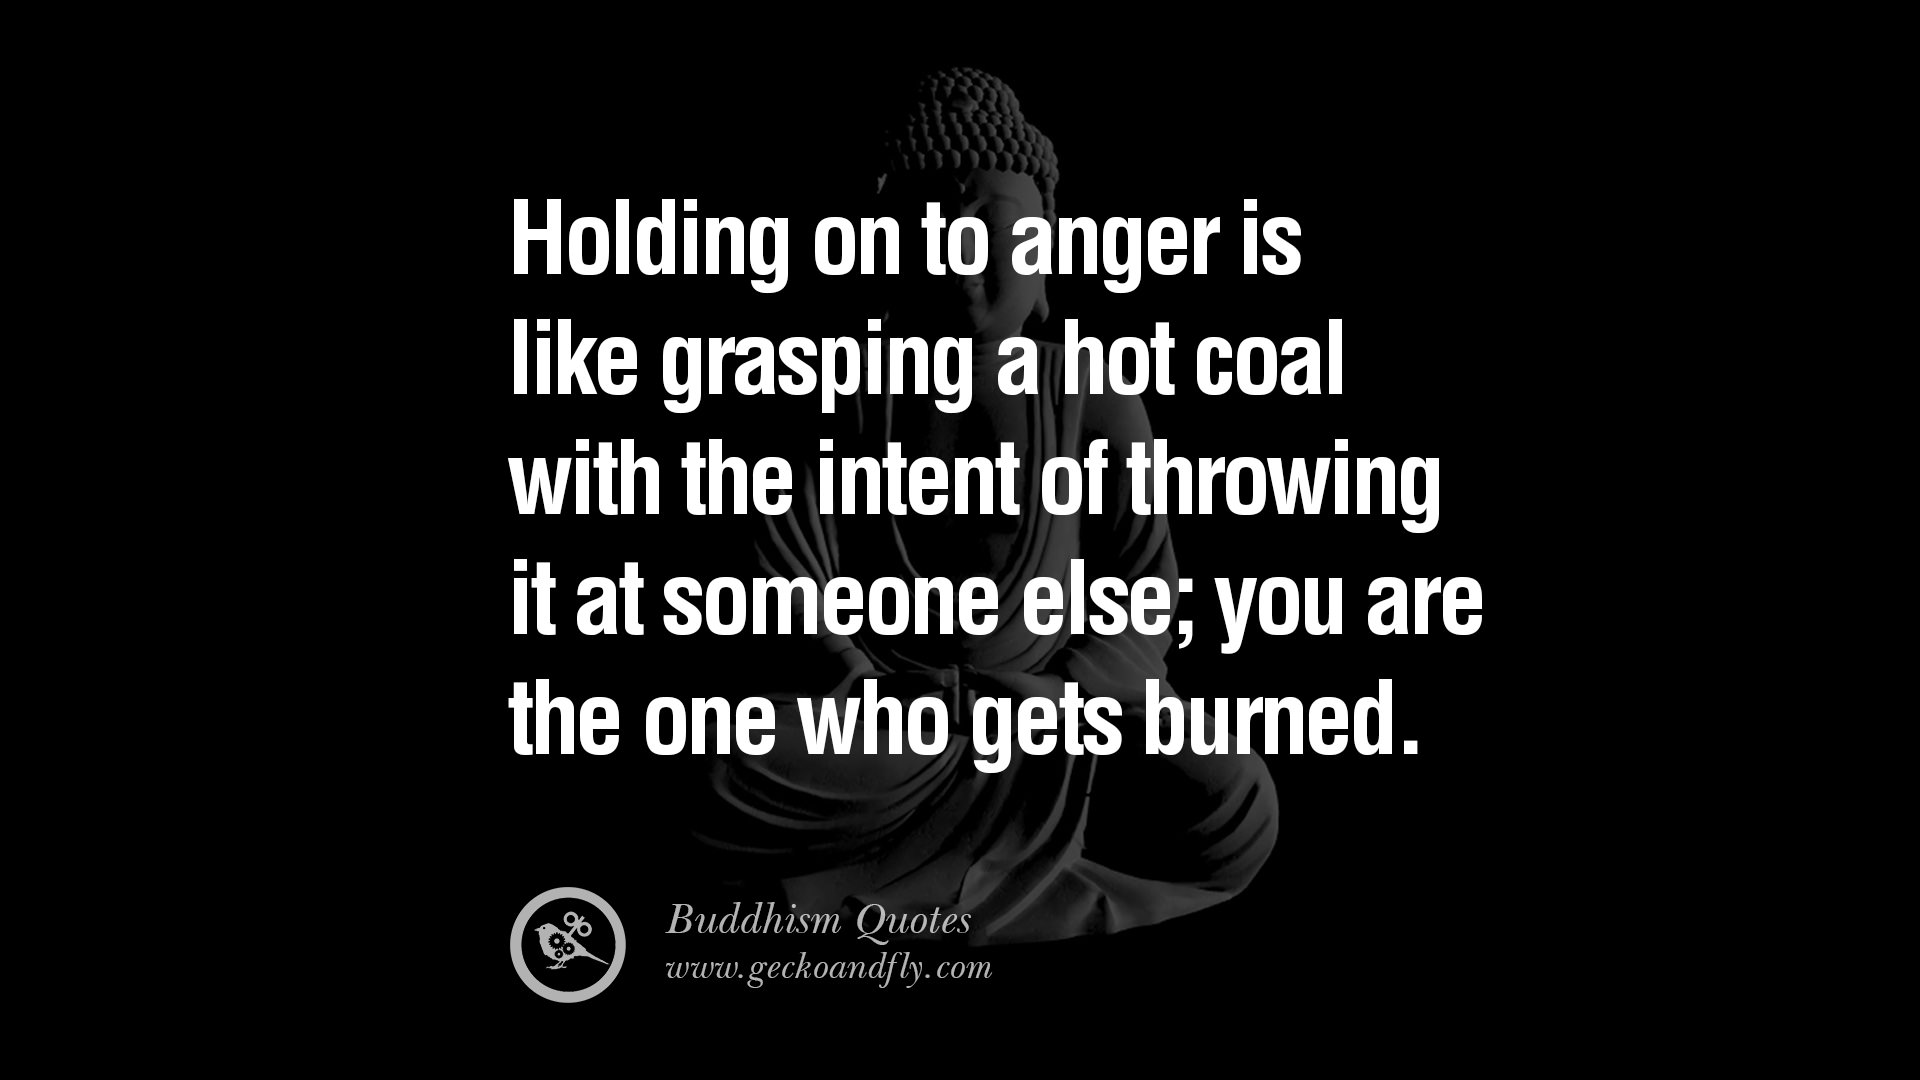 Quotes About Anger And Rage: 15 Zen Buddhism Quotes On Love, Anger Management And Salvation